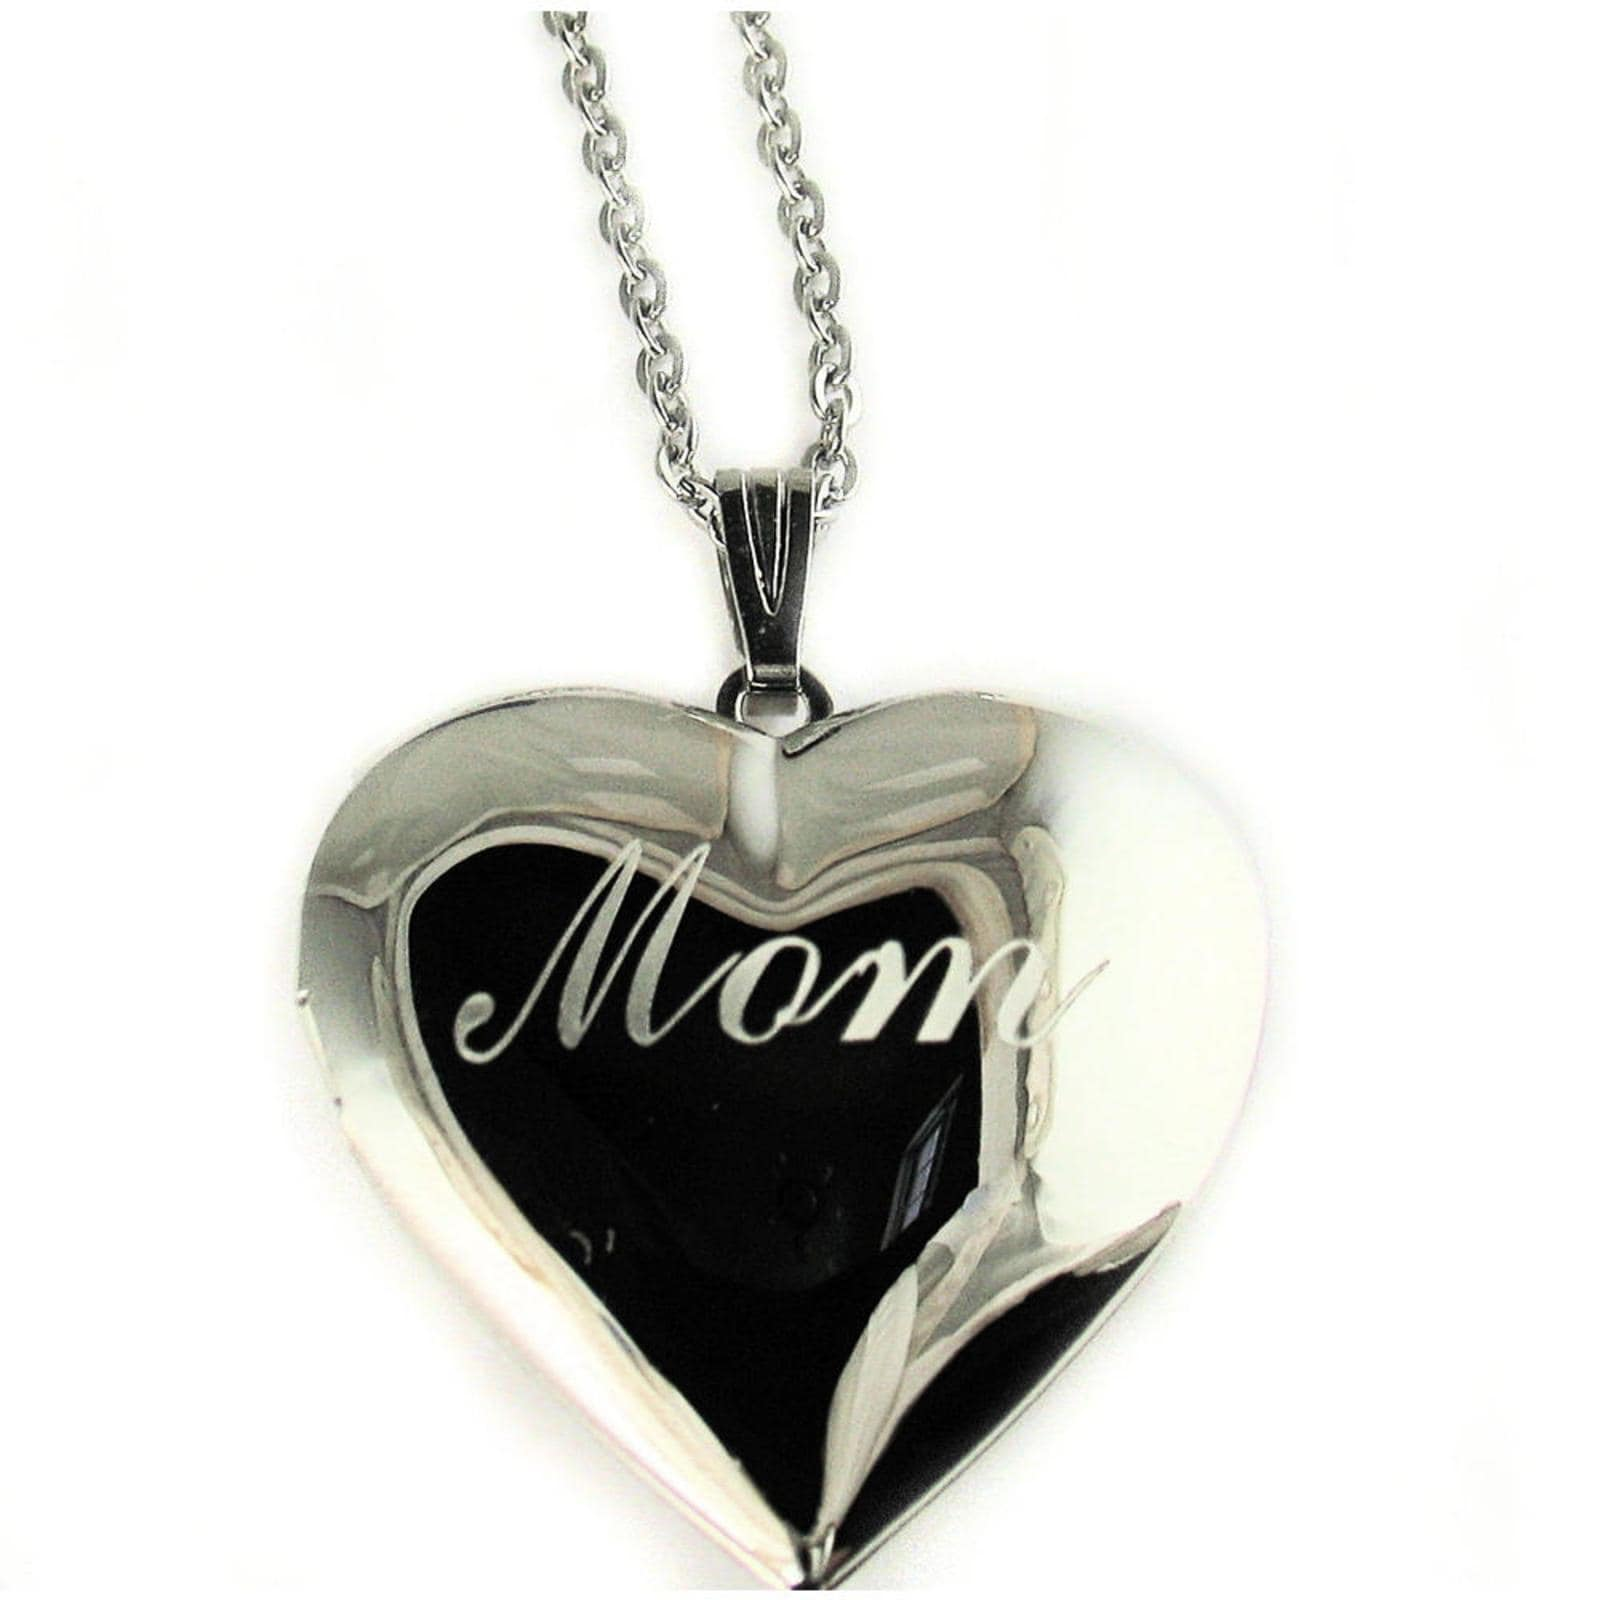 "Mom I Love You Heart Locket Pendant Rhodium Plated Necklace with 18"" Chain"